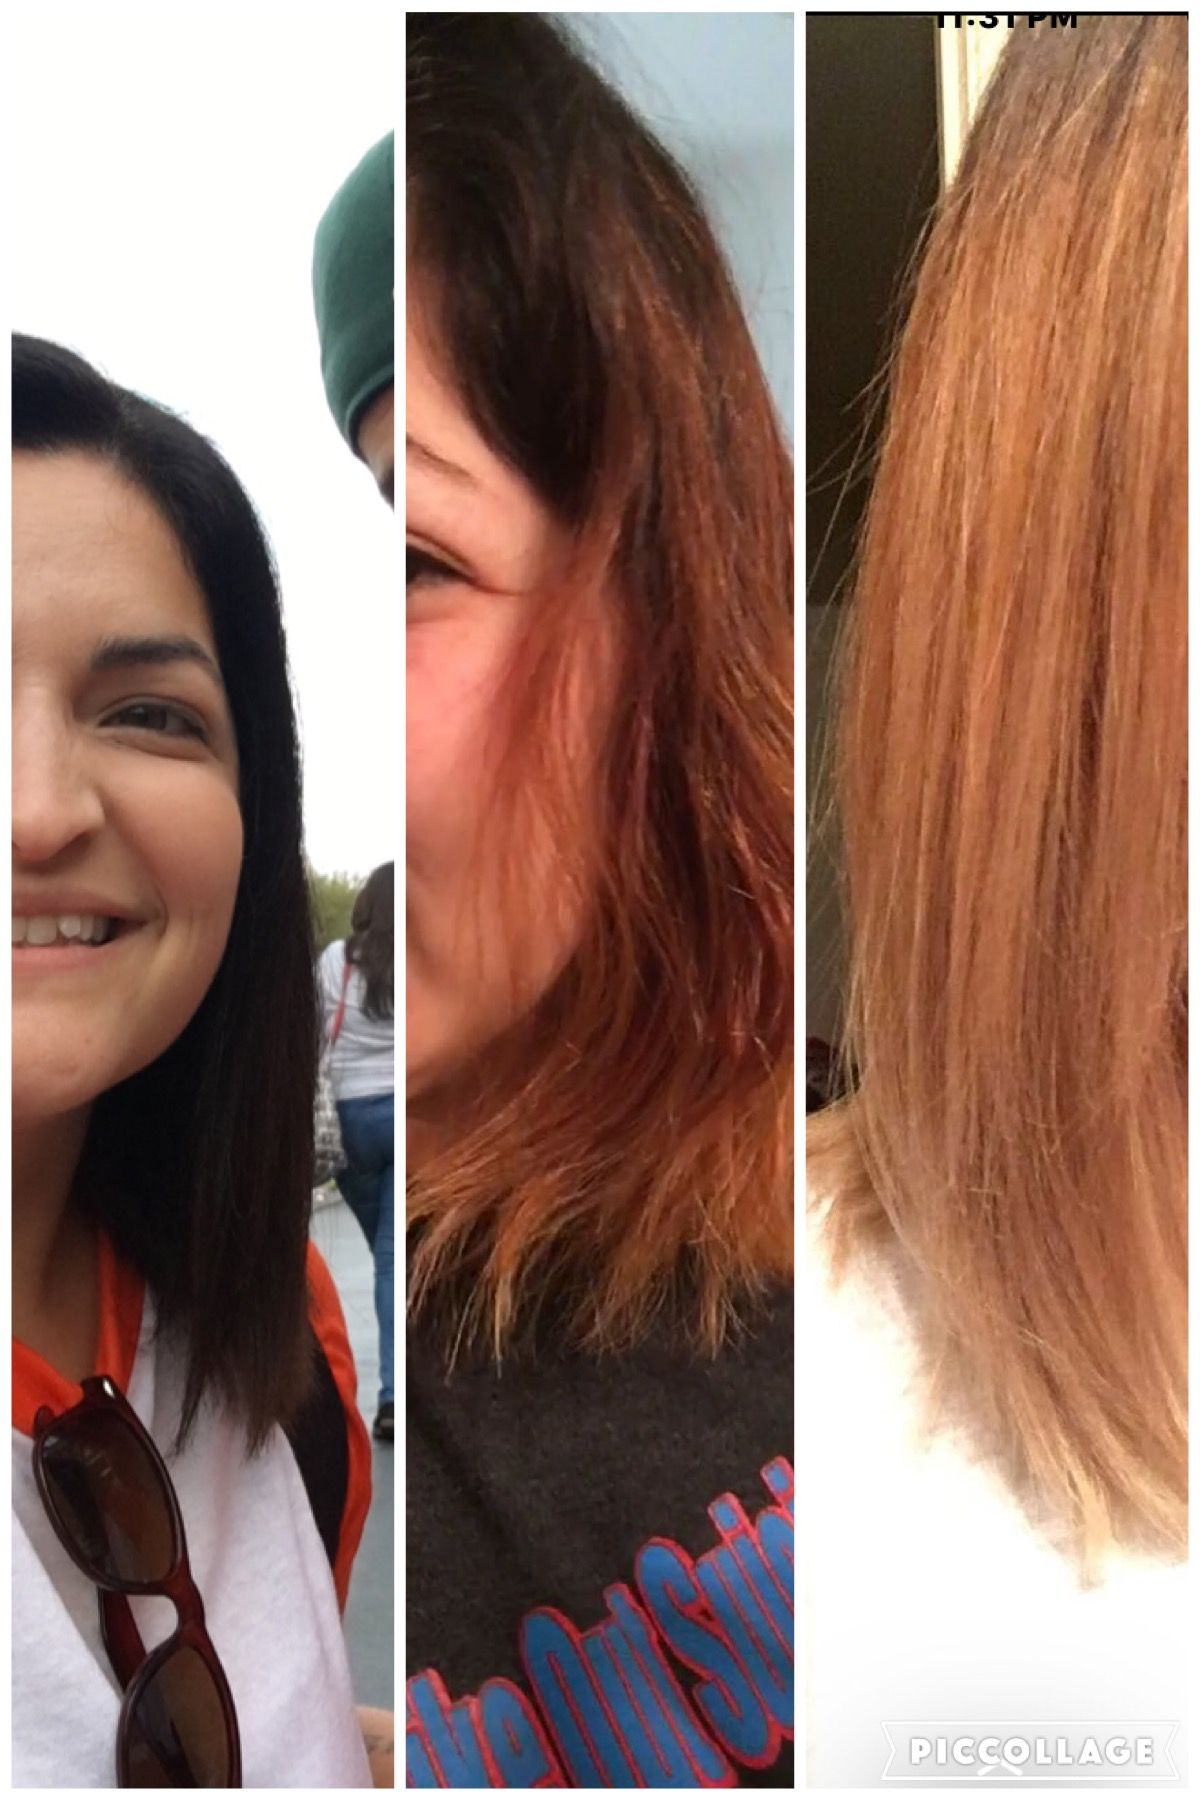 Volume 30 With Wella T14 Toner In One Week Coconut Oil Works Wonders T14 Wella Toner T14 Toner Wella T14